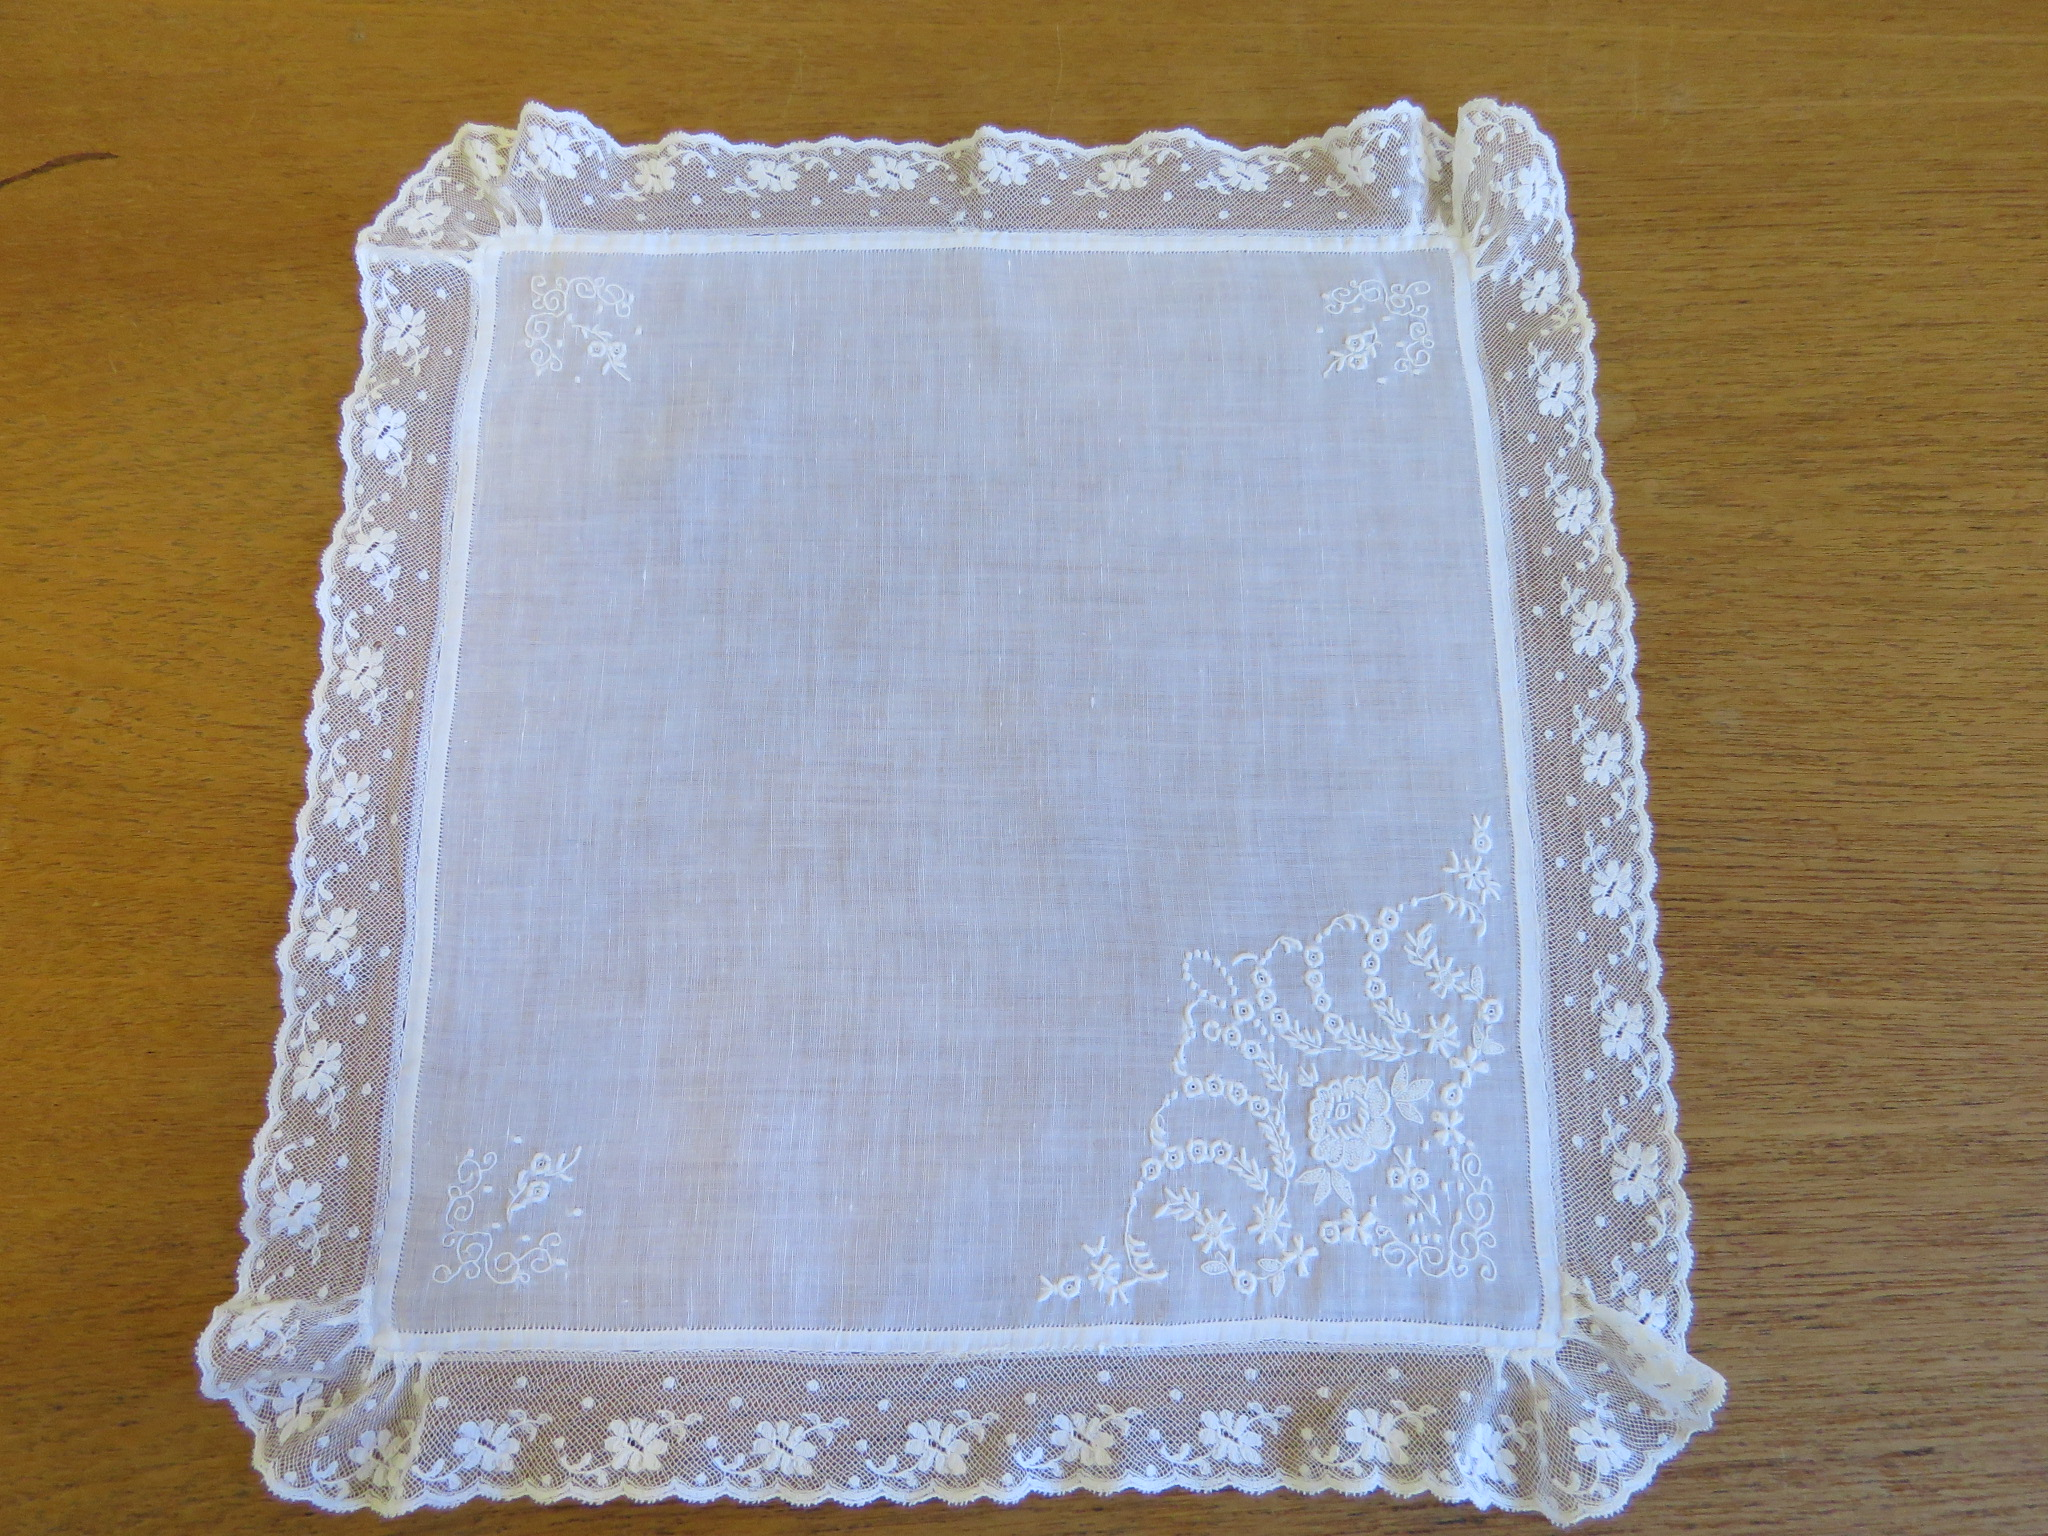 Antique Vintage Wedding Handkerchief White Linen Bridal Embroidered Lace Edging  (LAC-279)